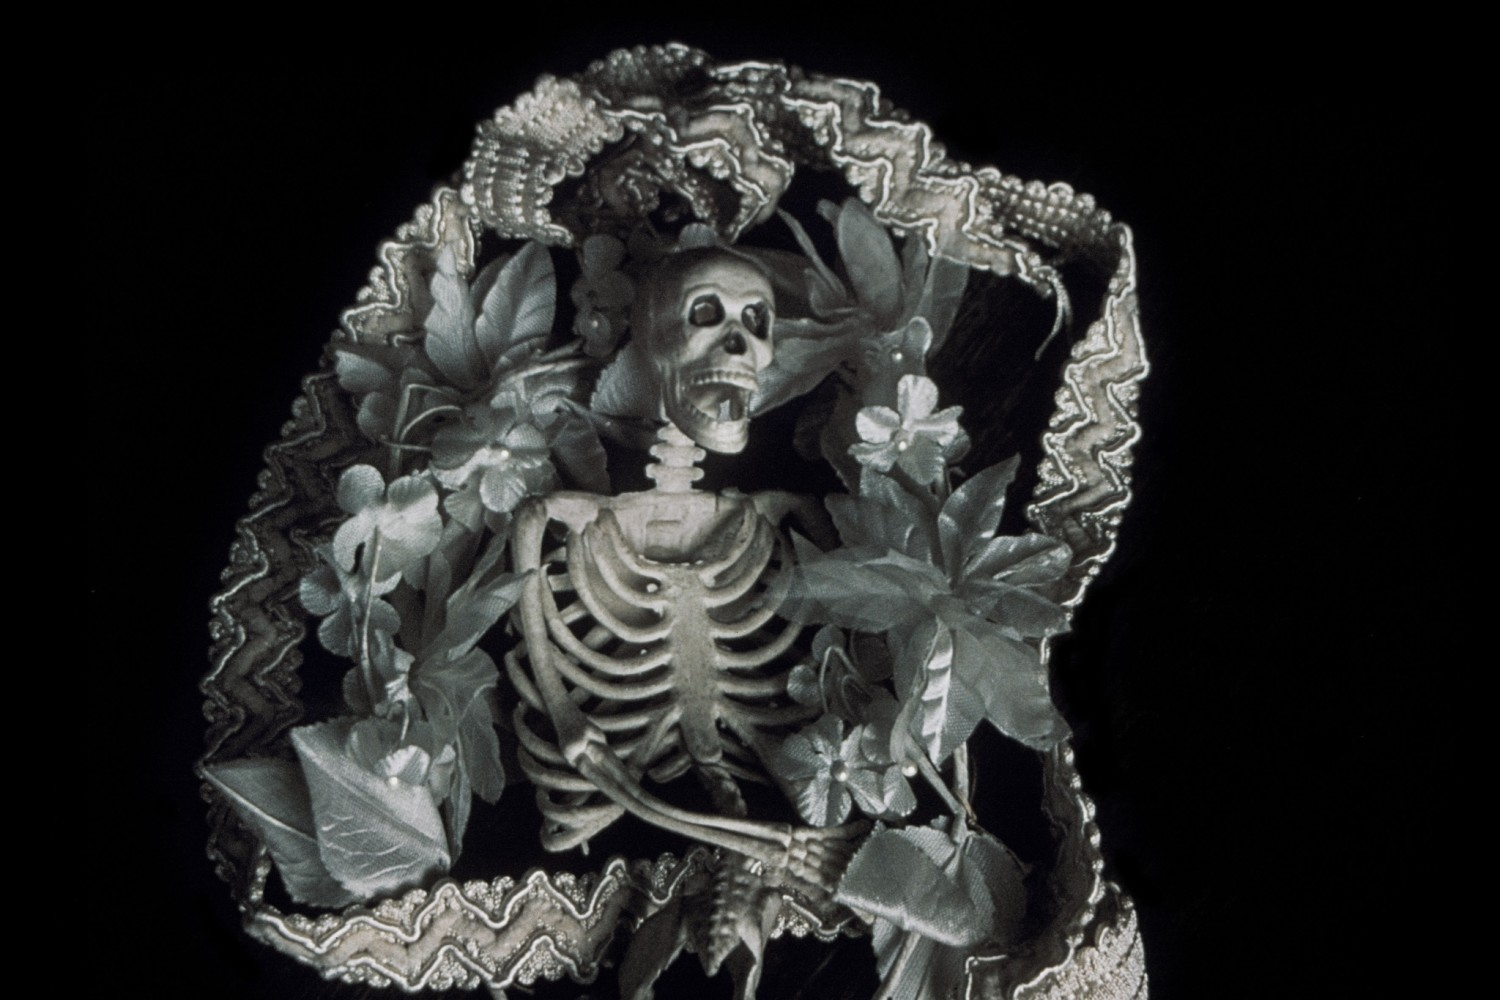 <div class=&#34;artist&#34;><strong>Jo SPENCE</strong></div> 1934 - 1992 <div class=&#34;title&#34;><em>The Final Project [Small skeleton 6]</em>, 1991 - 1992</div> <div class=&#34;signed_and_dated&#34;>Collaboration with Terry Dennett</div> <div class=&#34;medium&#34;>Digital print from medium format negative</div> <div class=&#34;dimensions&#34;>39 x 60 cm</div> <div class=&#34;edition_details&#34;>Edition of 2 plus 1 Estate Copy</div>